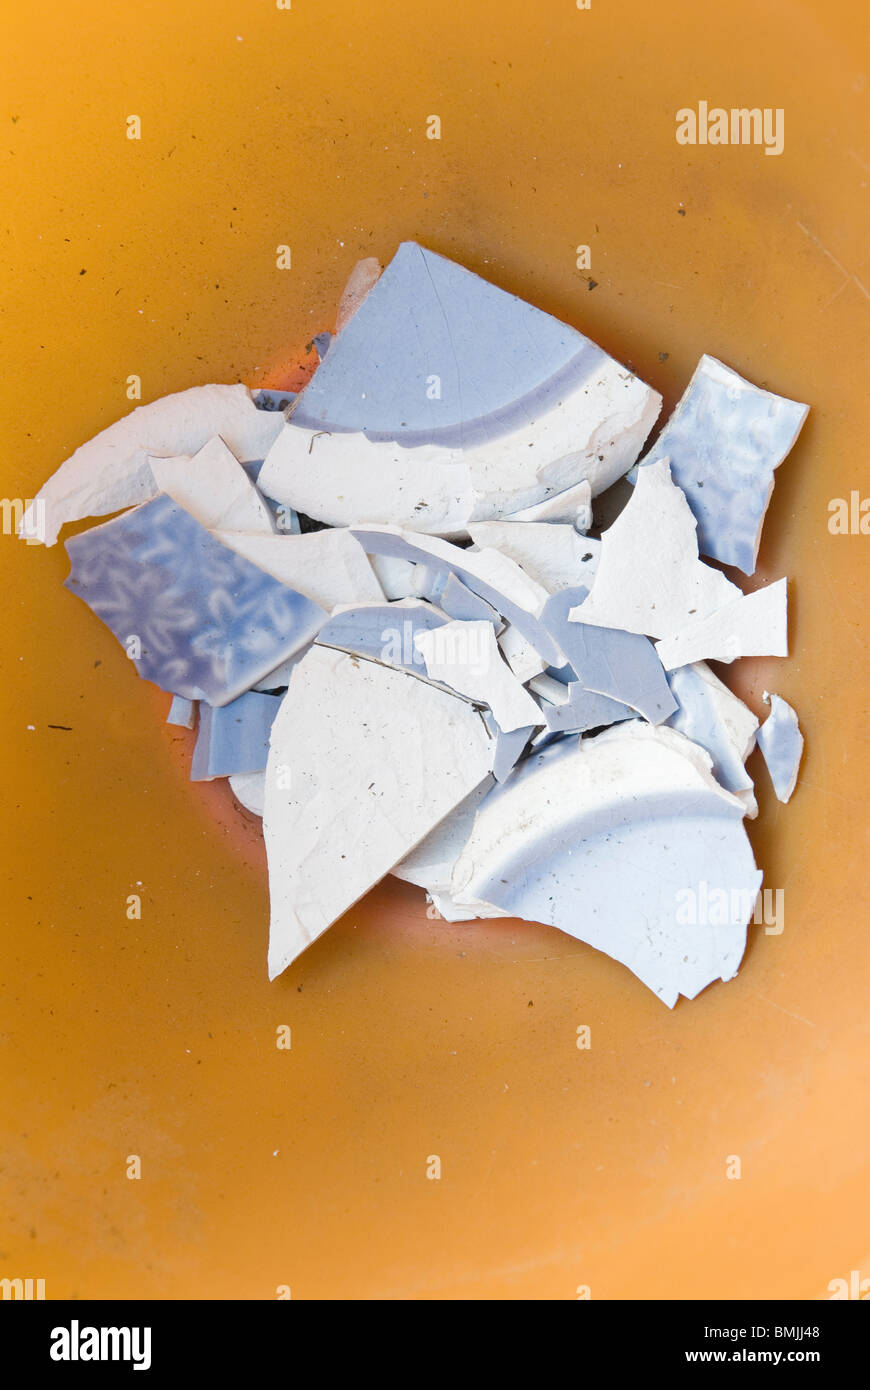 Broken pieces of flower pot on coloured background - Stock Image